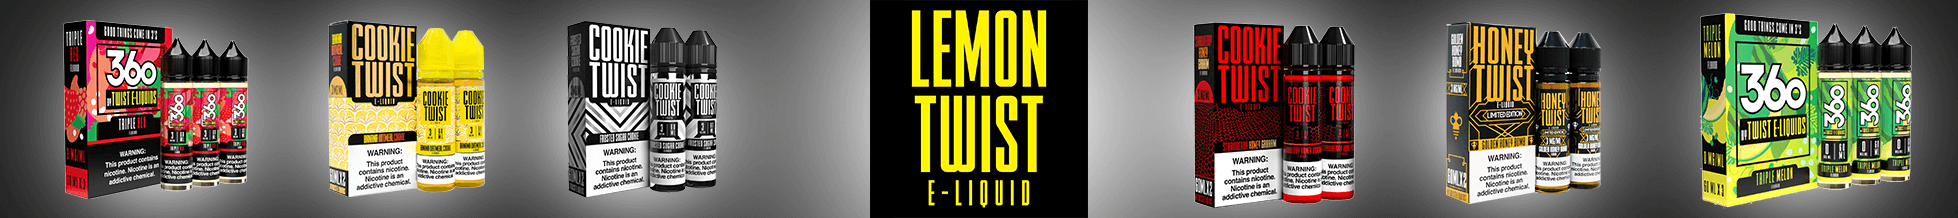 lemon-twist-category-banner4.png